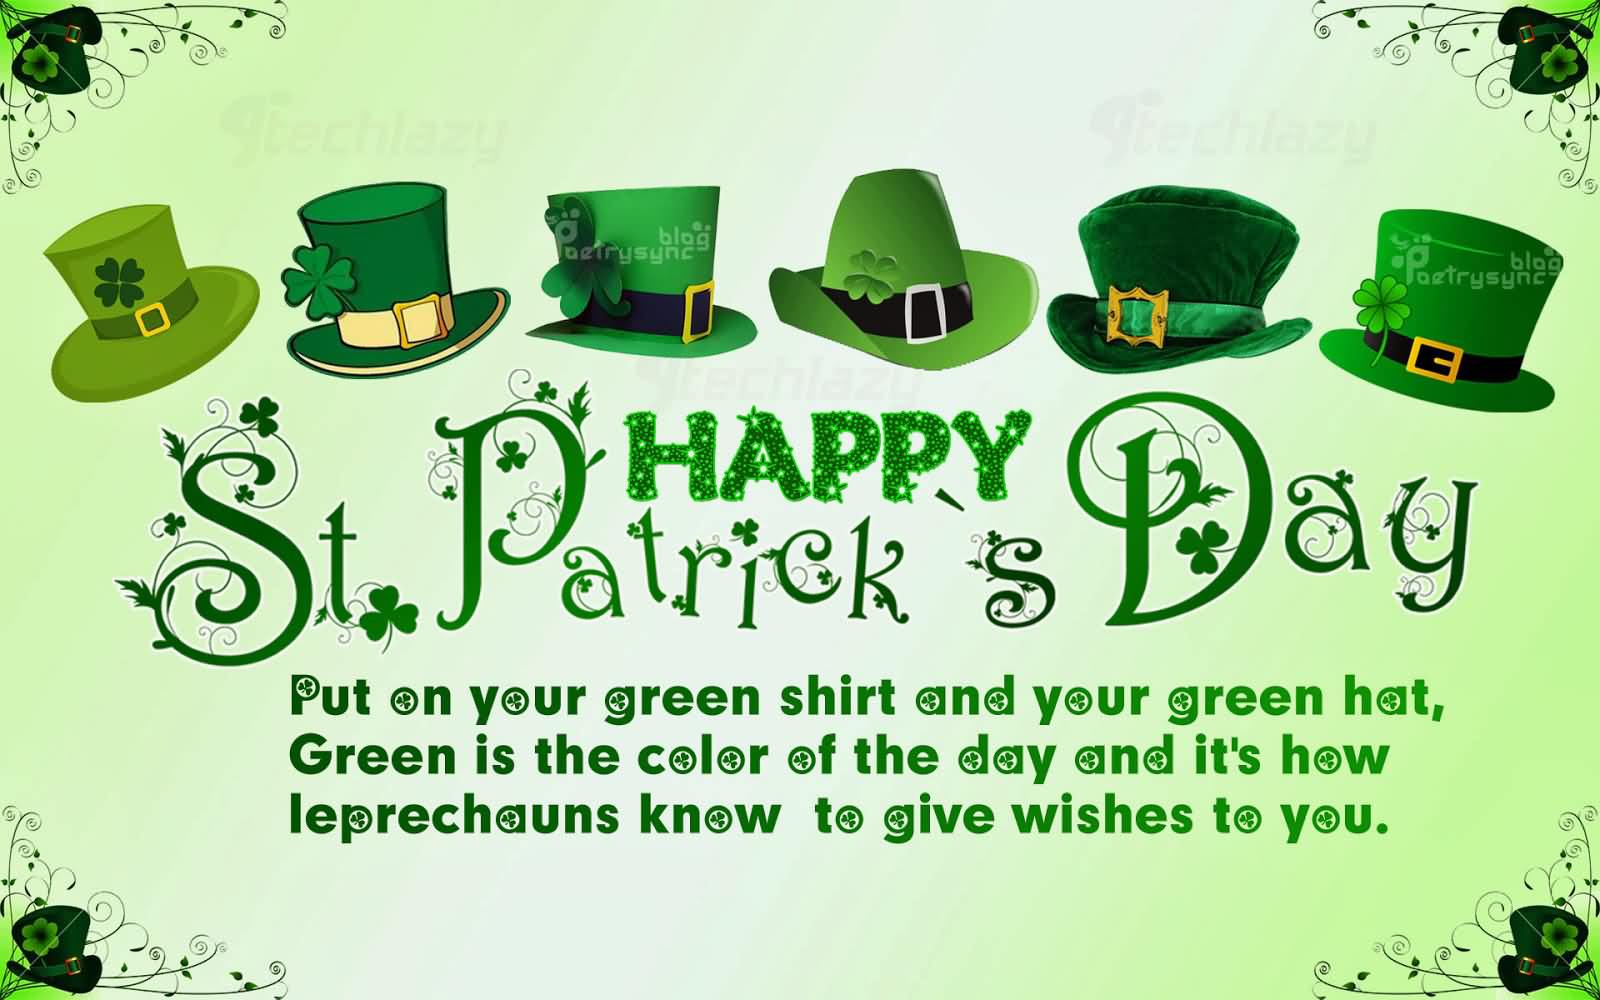 Happy St. Patrick's Day Best Wishes To You